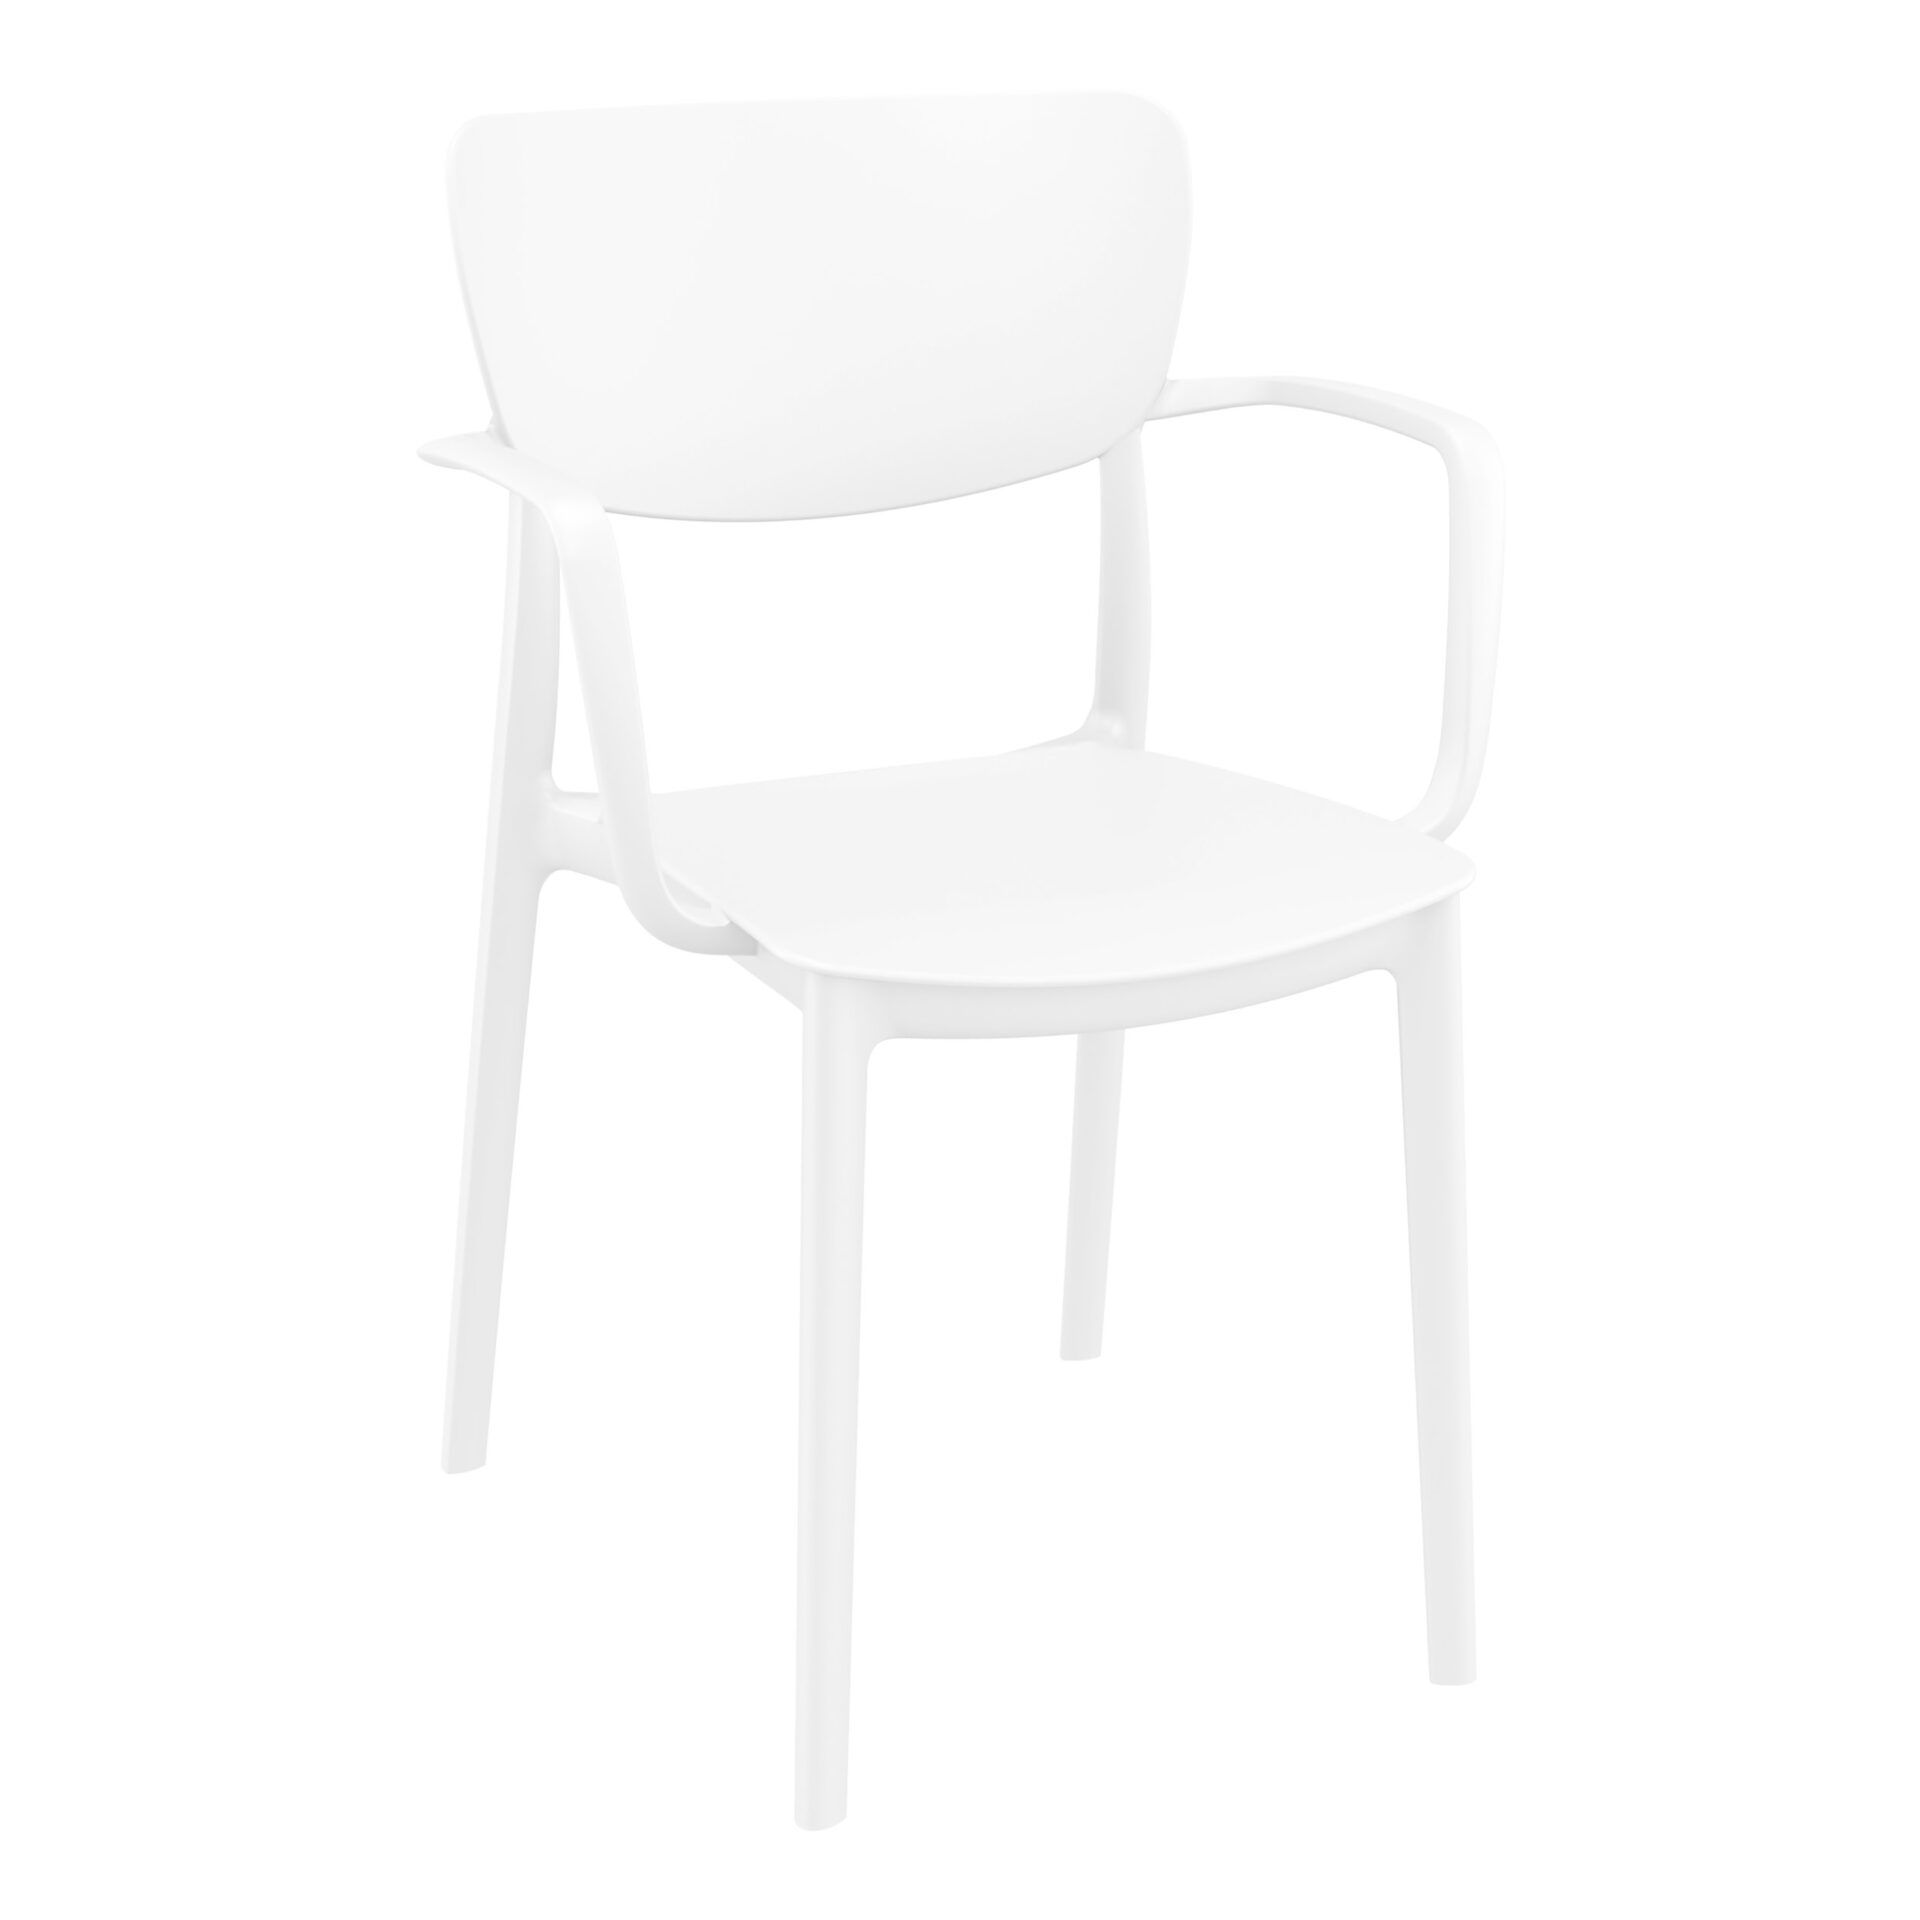 polypropylene hospitality seating lisa armchair white front side